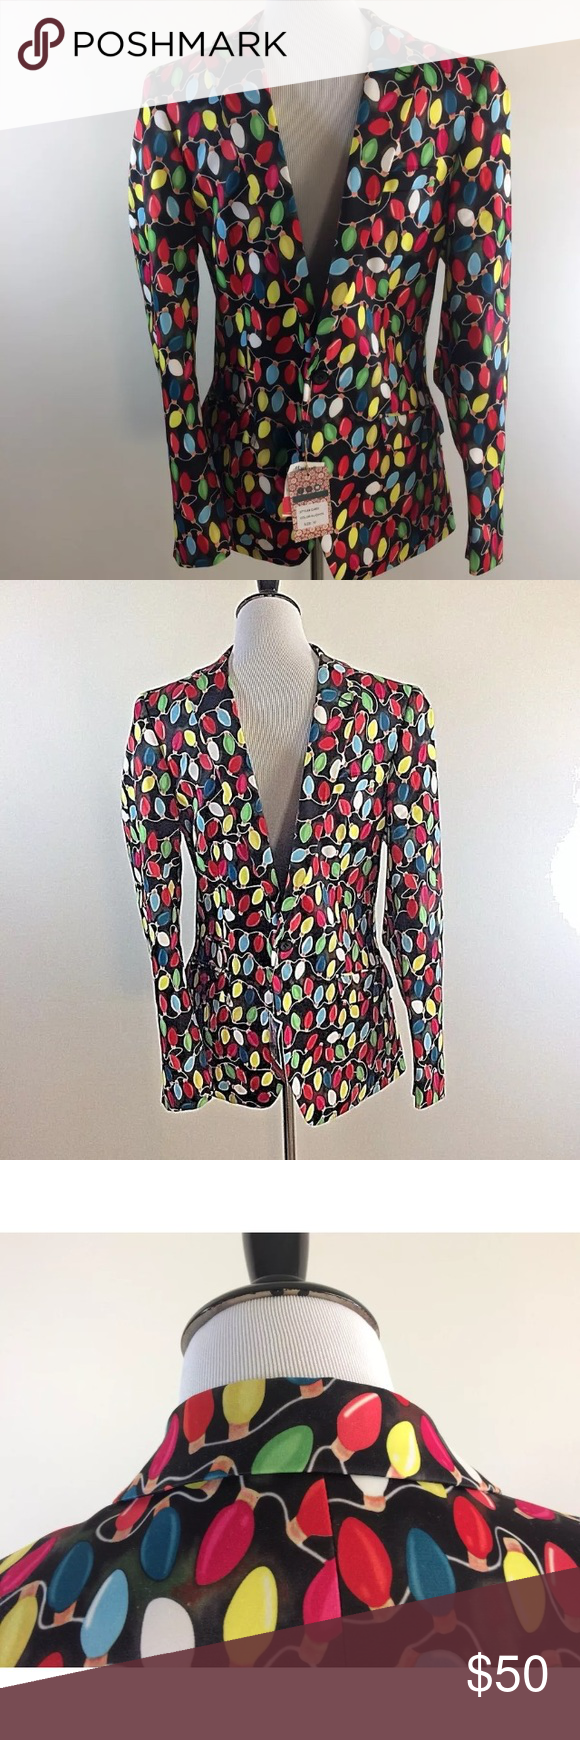 Christmas Suslo Couture Blazer Slim Fit Sport Coat Holiday Lights NWT! NEW